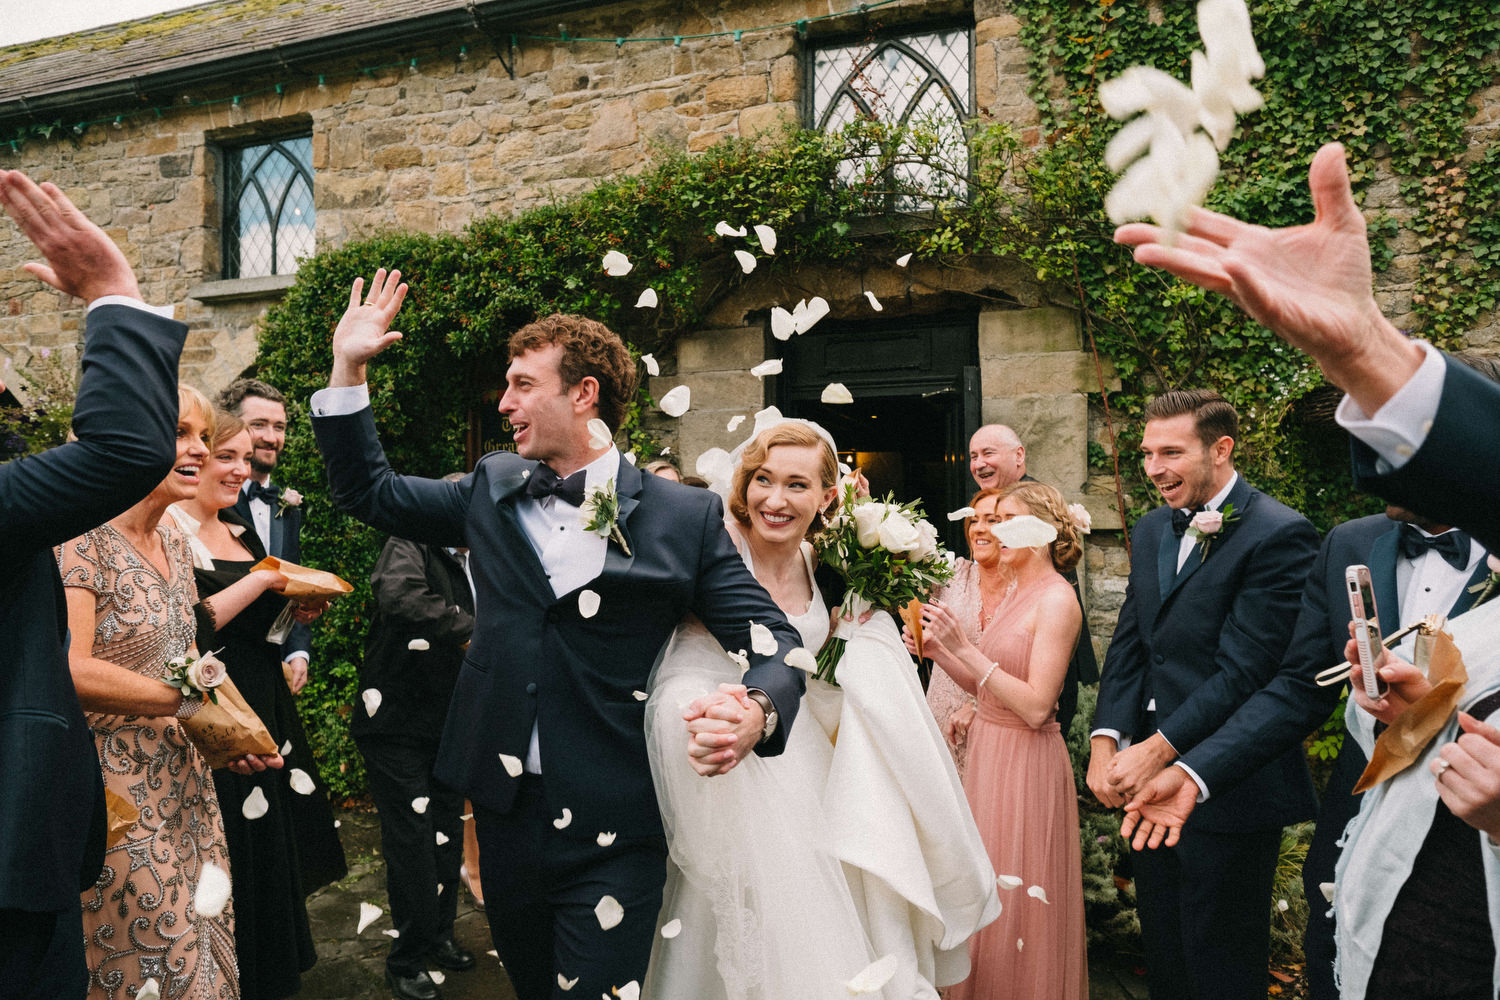 000000000000000000000128_bride_style_vintage_photography_david_mcclelland_ireland_castle_hollywood_petals_confetti_kinnity_wedding_photographer_fujifilm